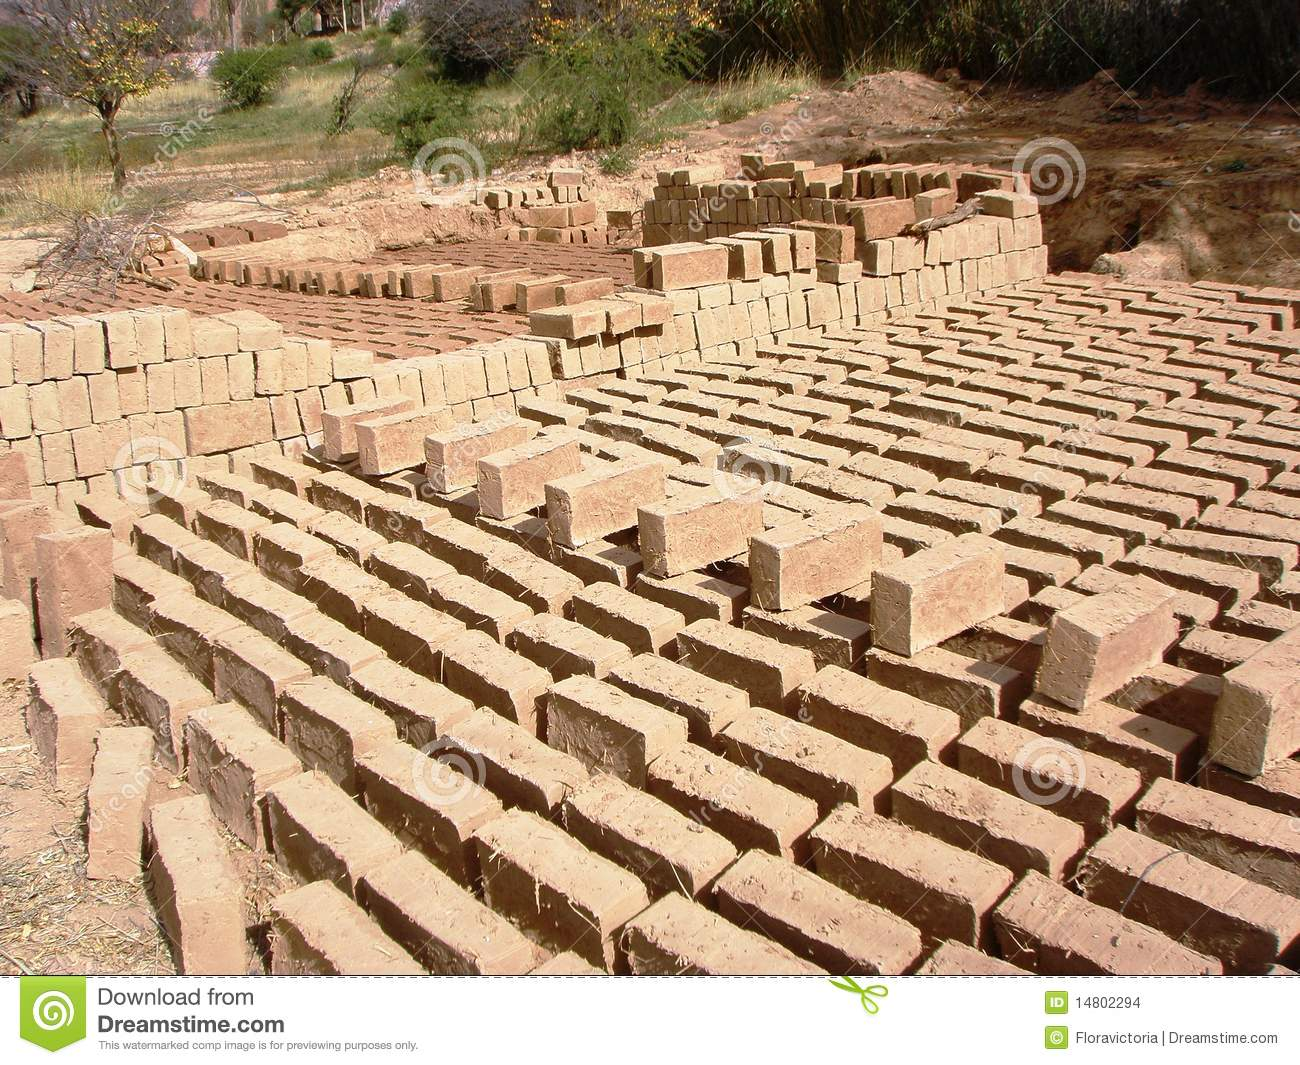 Adobe bricks sustainable building materials 3 stock Building an adobe house